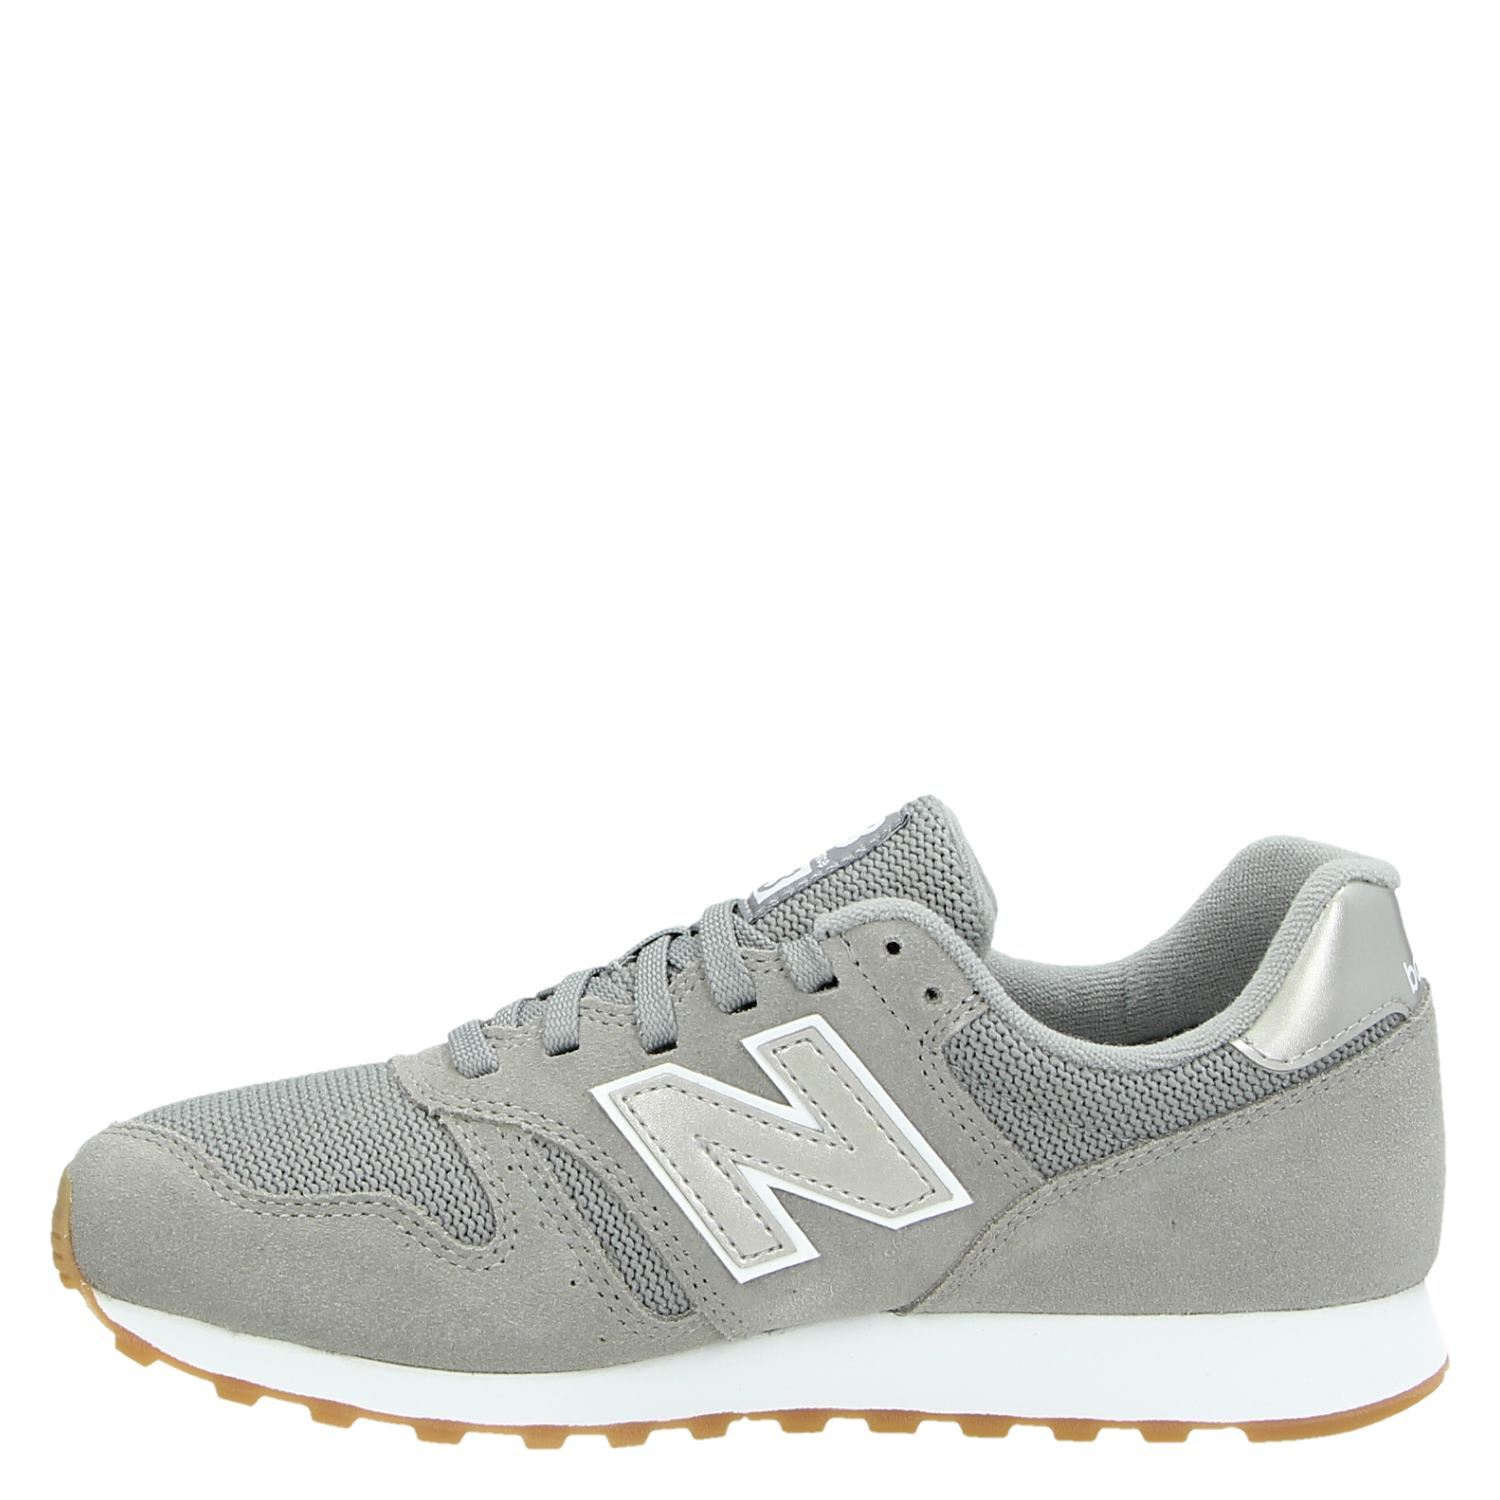 New Balance 373 dames lage sneakers grijs